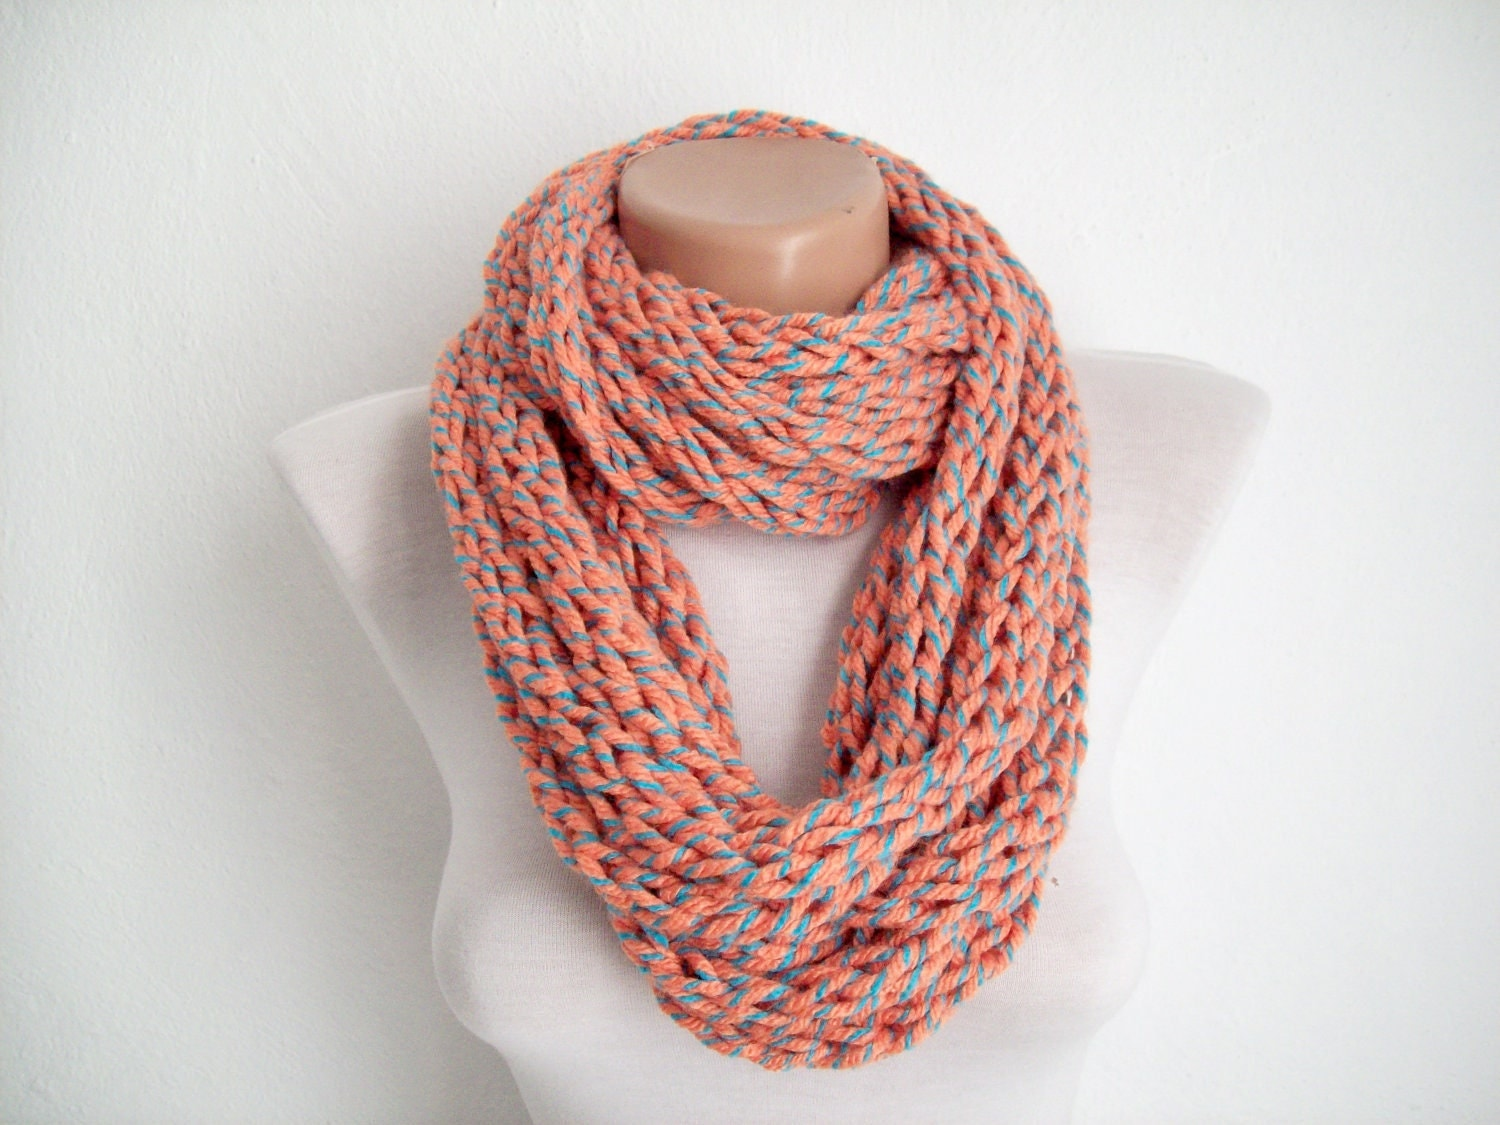 Finger Knitting Scarf : Finger knitting scarf orange blue multicolor by scarfnurlu